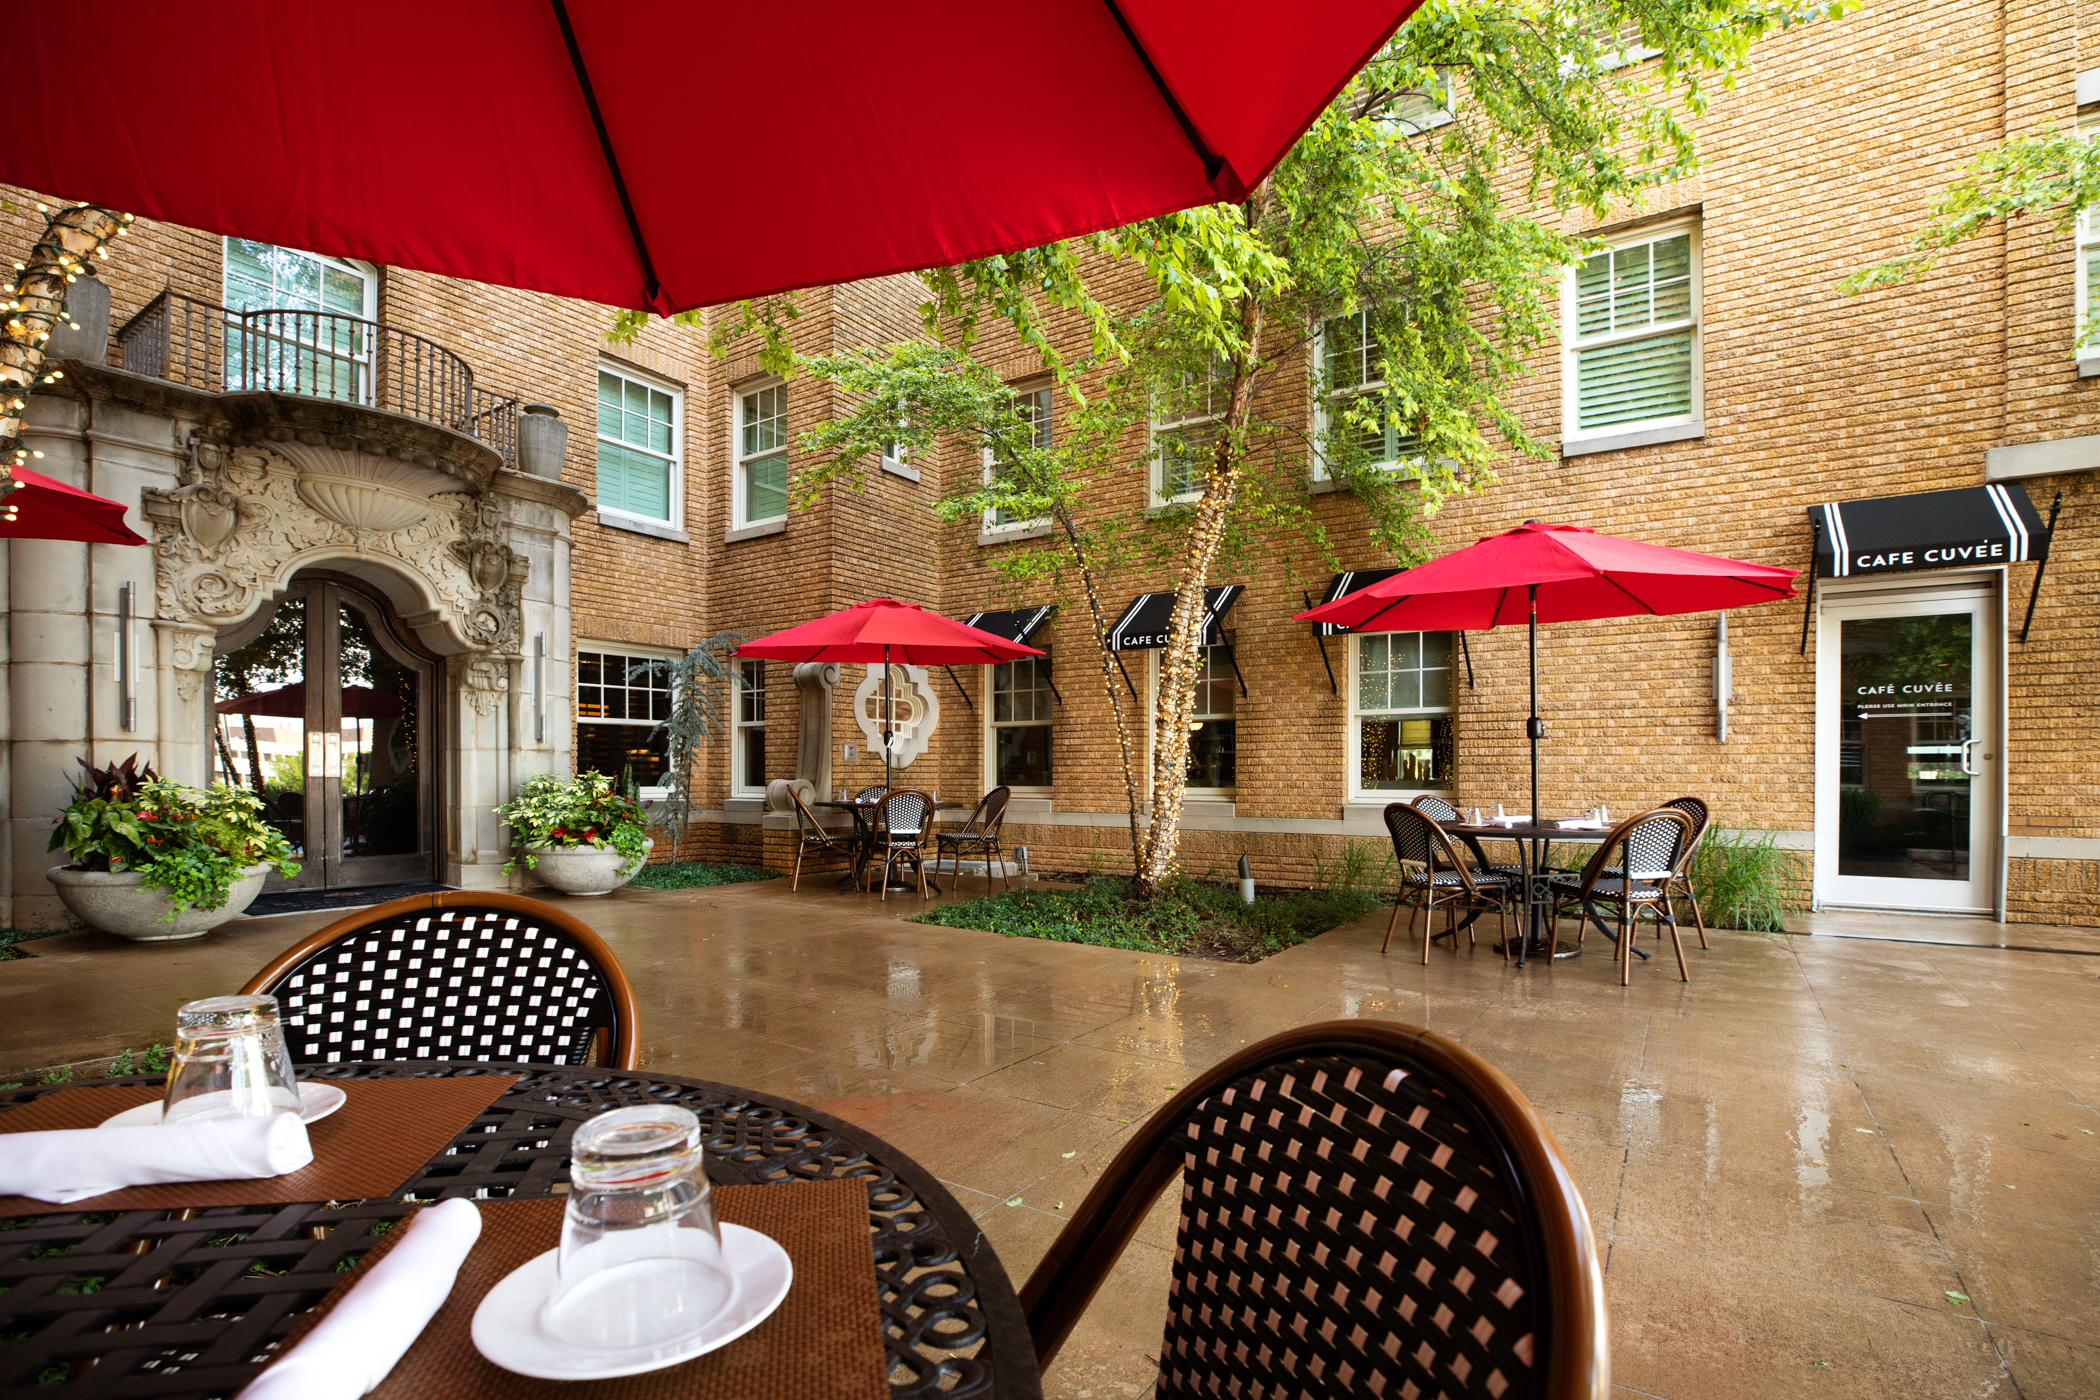 outdoor dining area with brown tables and chairs covered by big red umbrellas